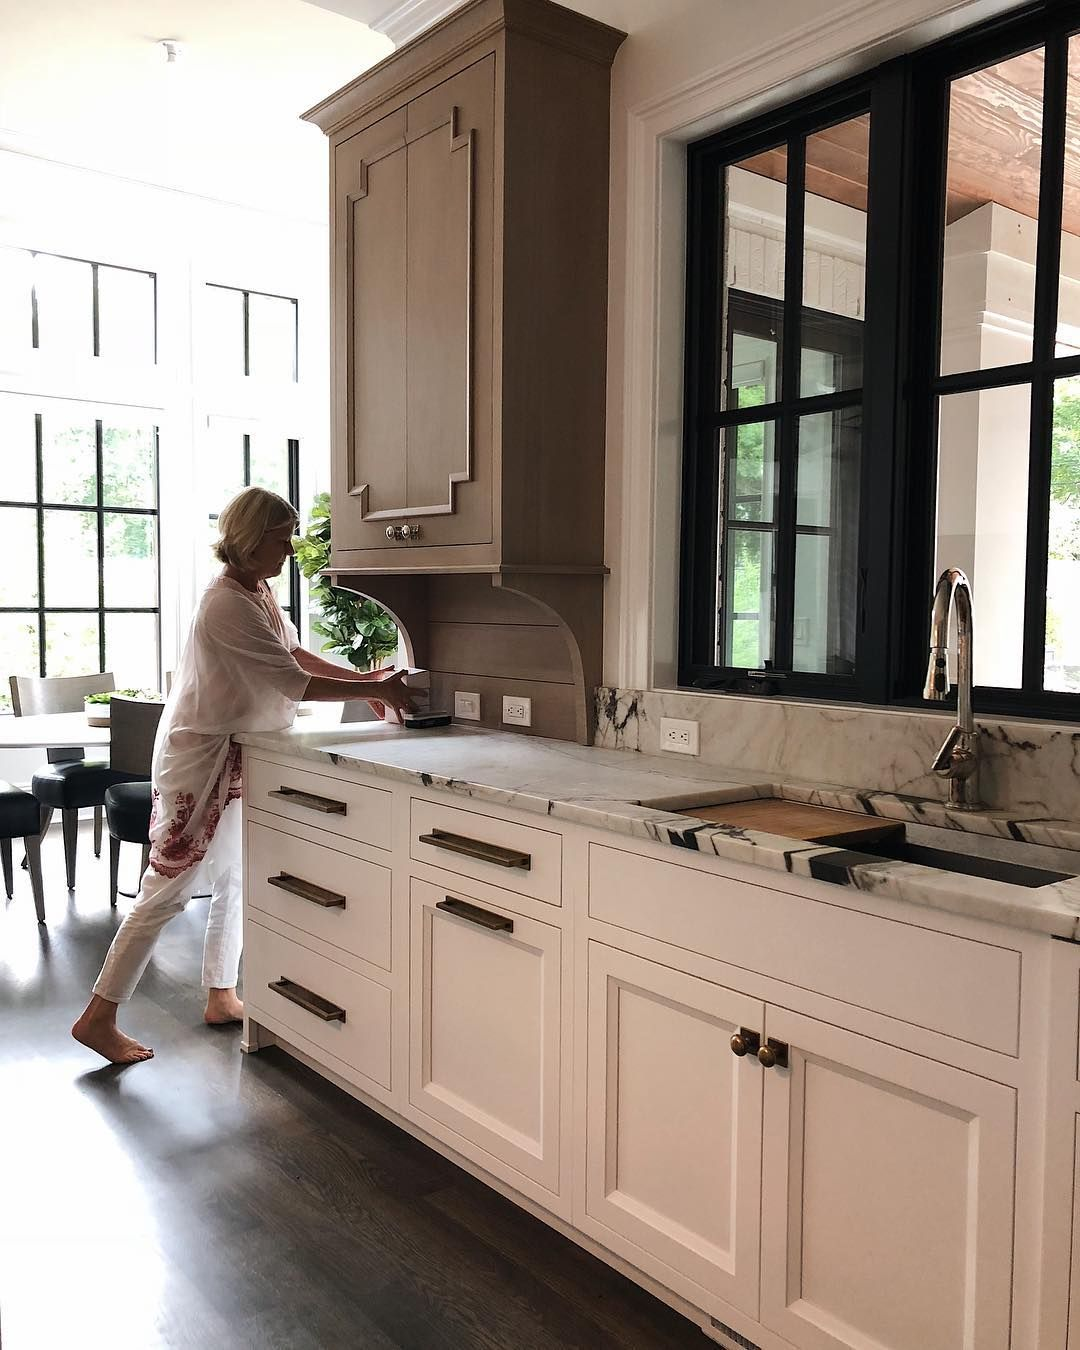 Jean Stoffer On Instagram We Are Pretty Excited About The Kitchen In Our Ann Arbor Mi Project W Cabinet Door Styles Kitchen Renovation White Modern Kitchen